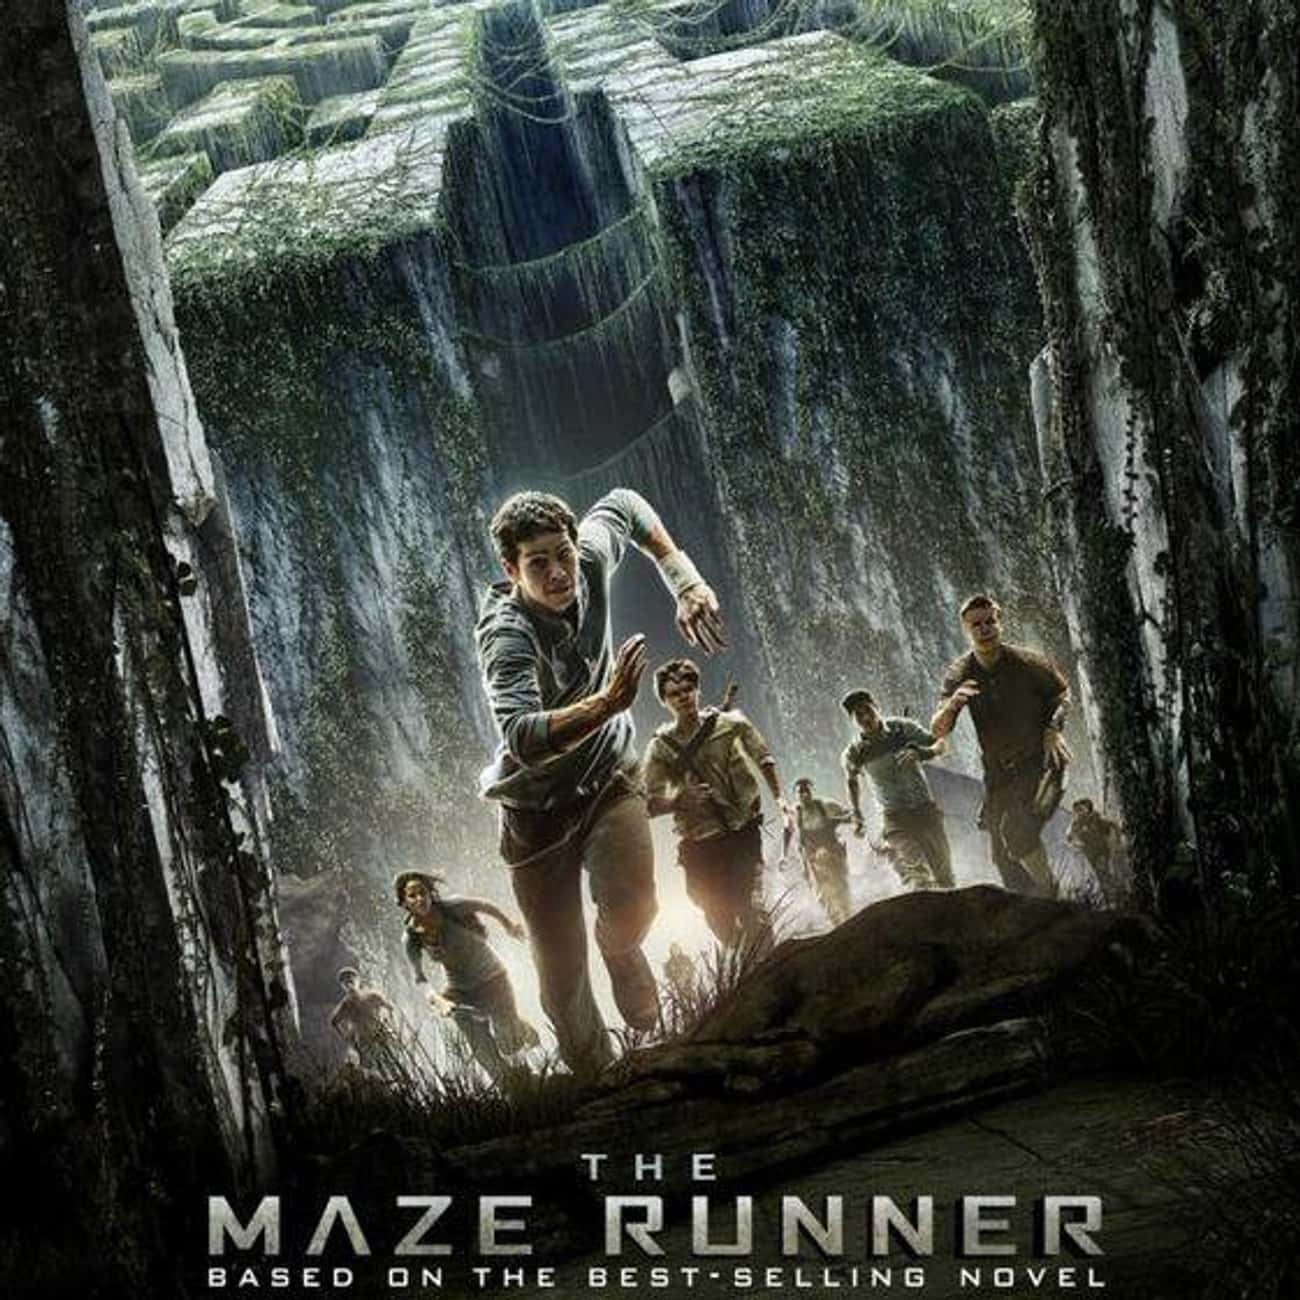 Maze Runner Franchise is listed (or ranked) 1 on the list What to Watch If You Love The Hunger Games